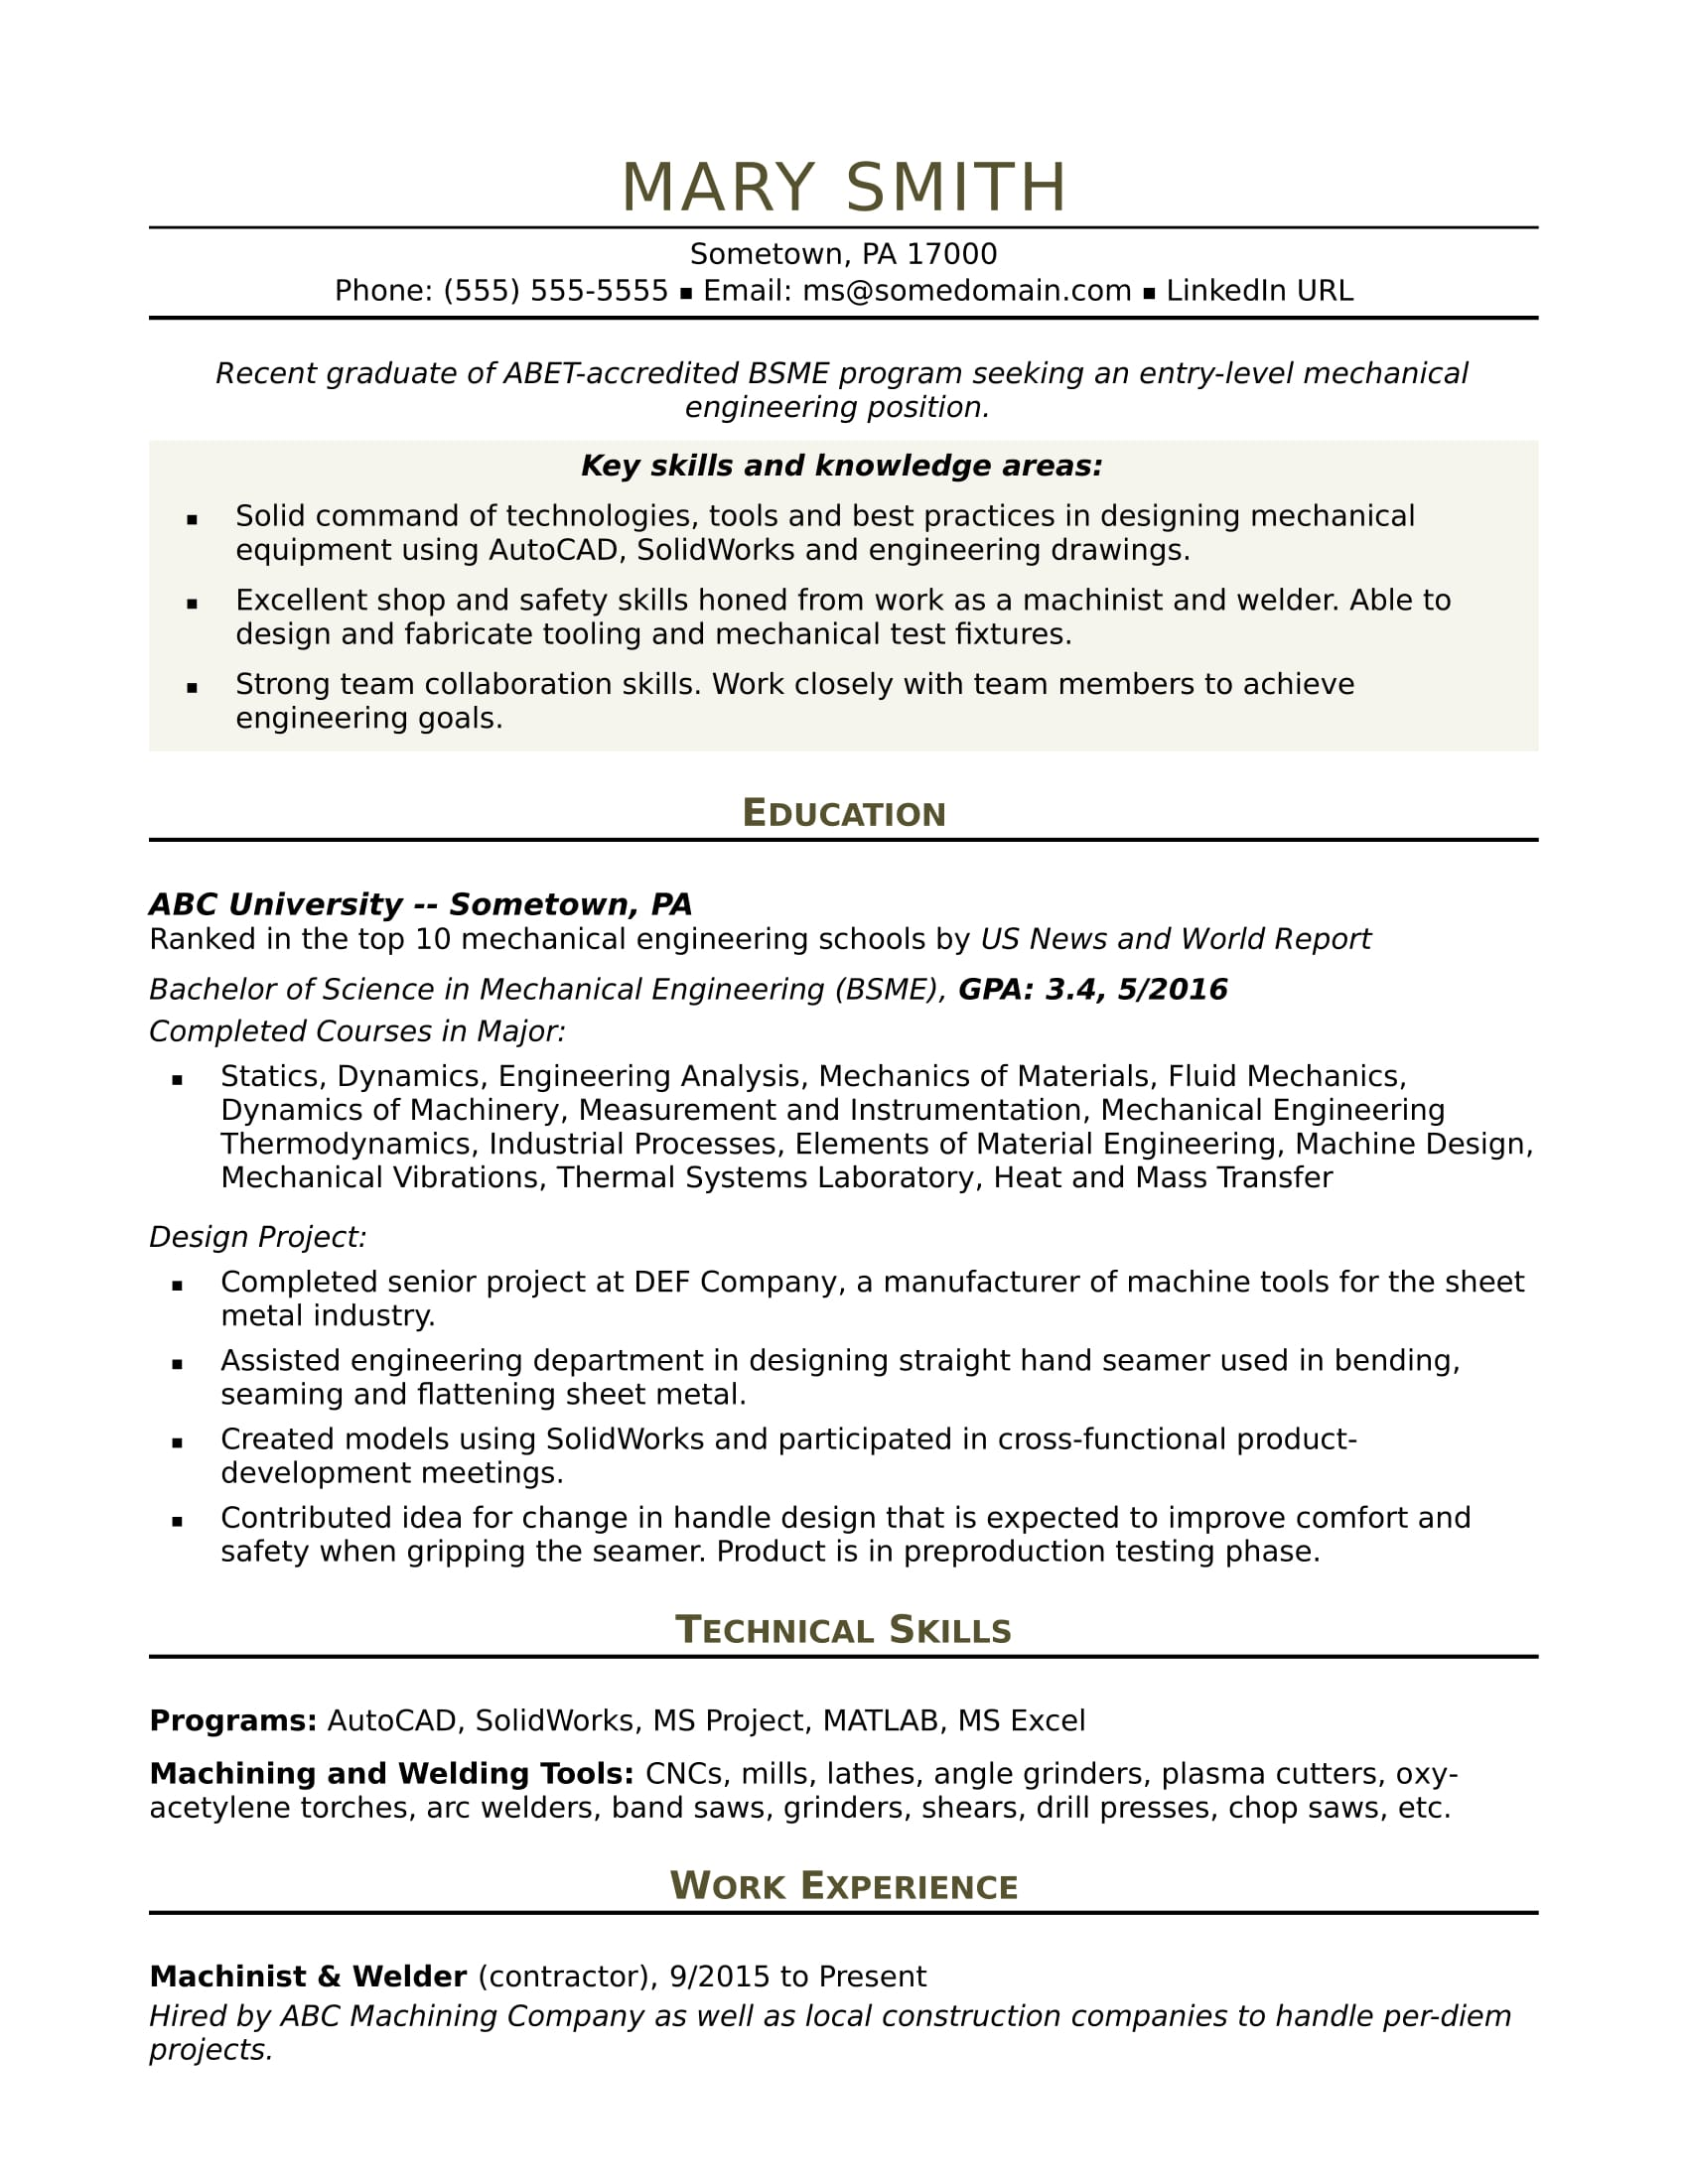 Sample Engineering Resume Interesting Sample Resume For An EntryLevel Mechanical Engineer Monster